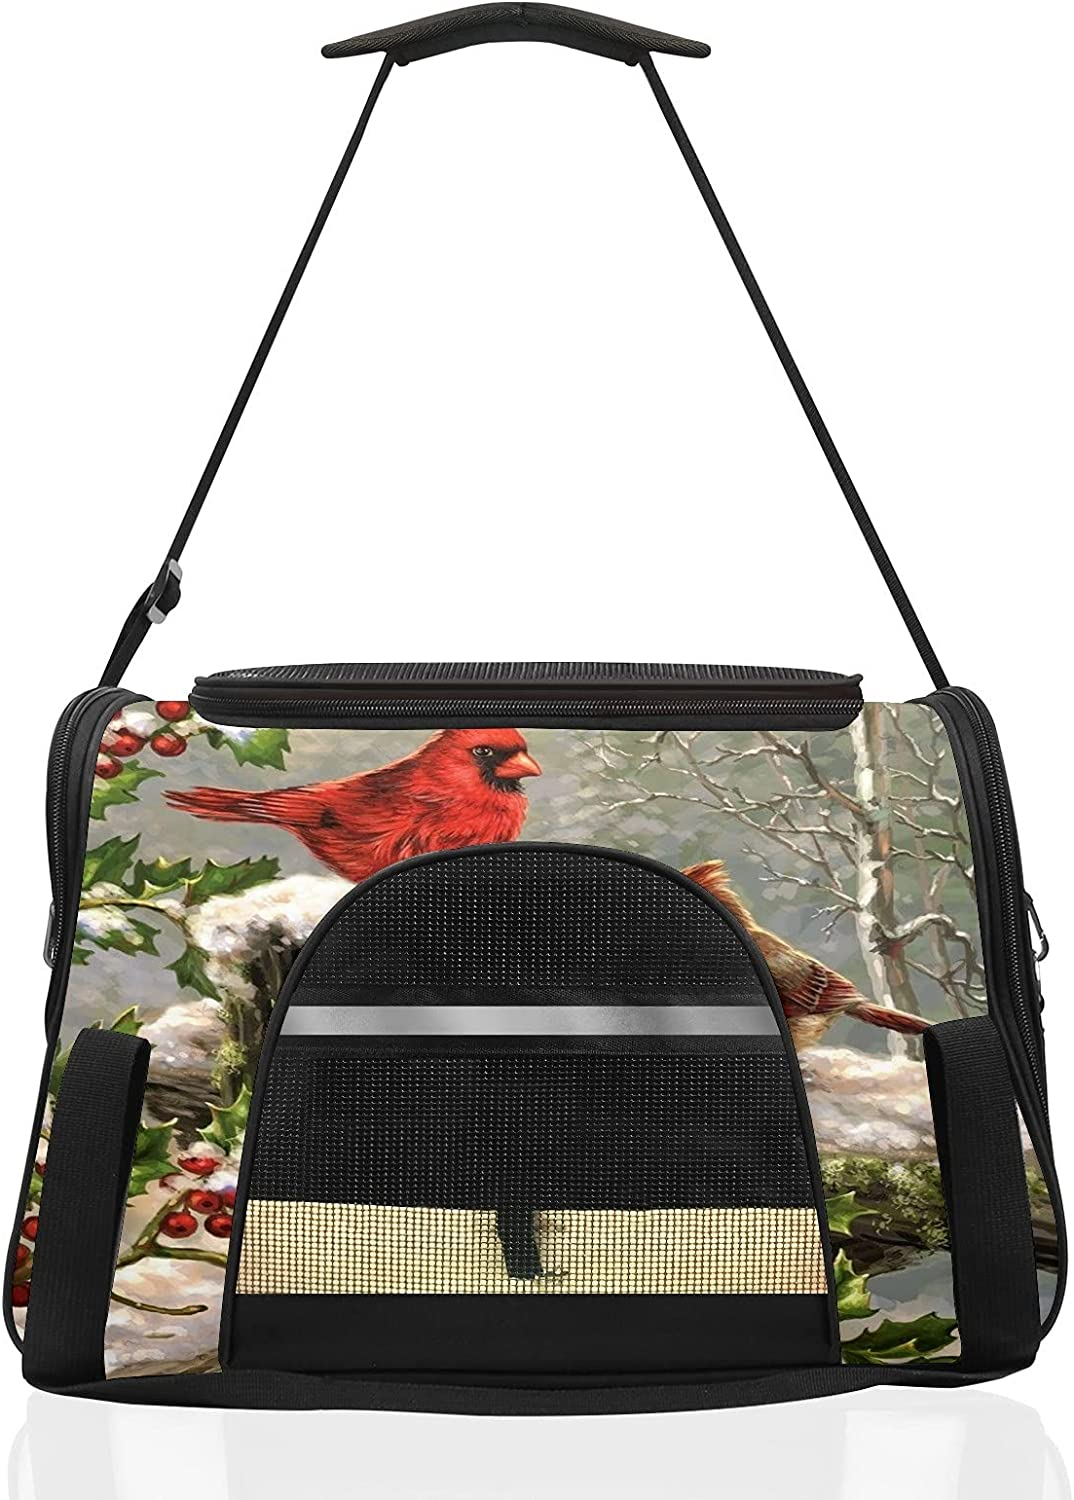 Pet Carriers Genuine for Cat Bird Selling rankings Soft-Sided Travel Approved Airline